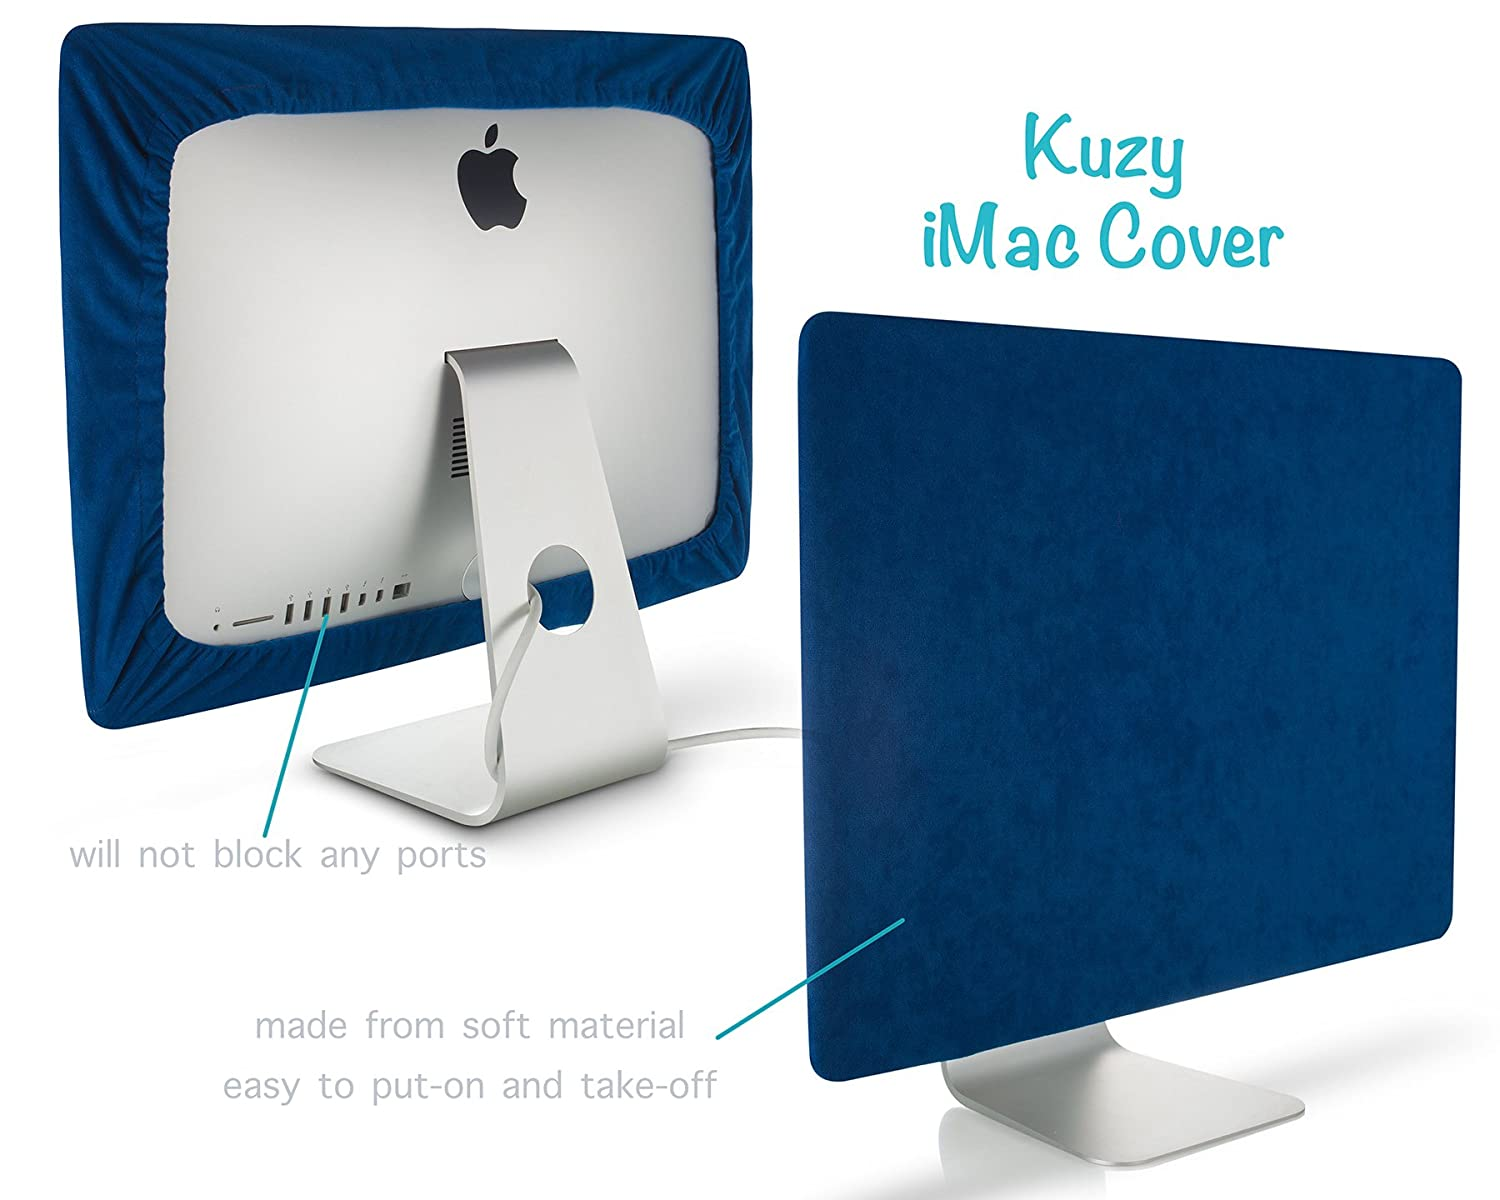 Kuzy - Screen Cover for iMac 27-inch Dust Cover Display Protector (Models: A1862, A1419, A1312) - GRAY